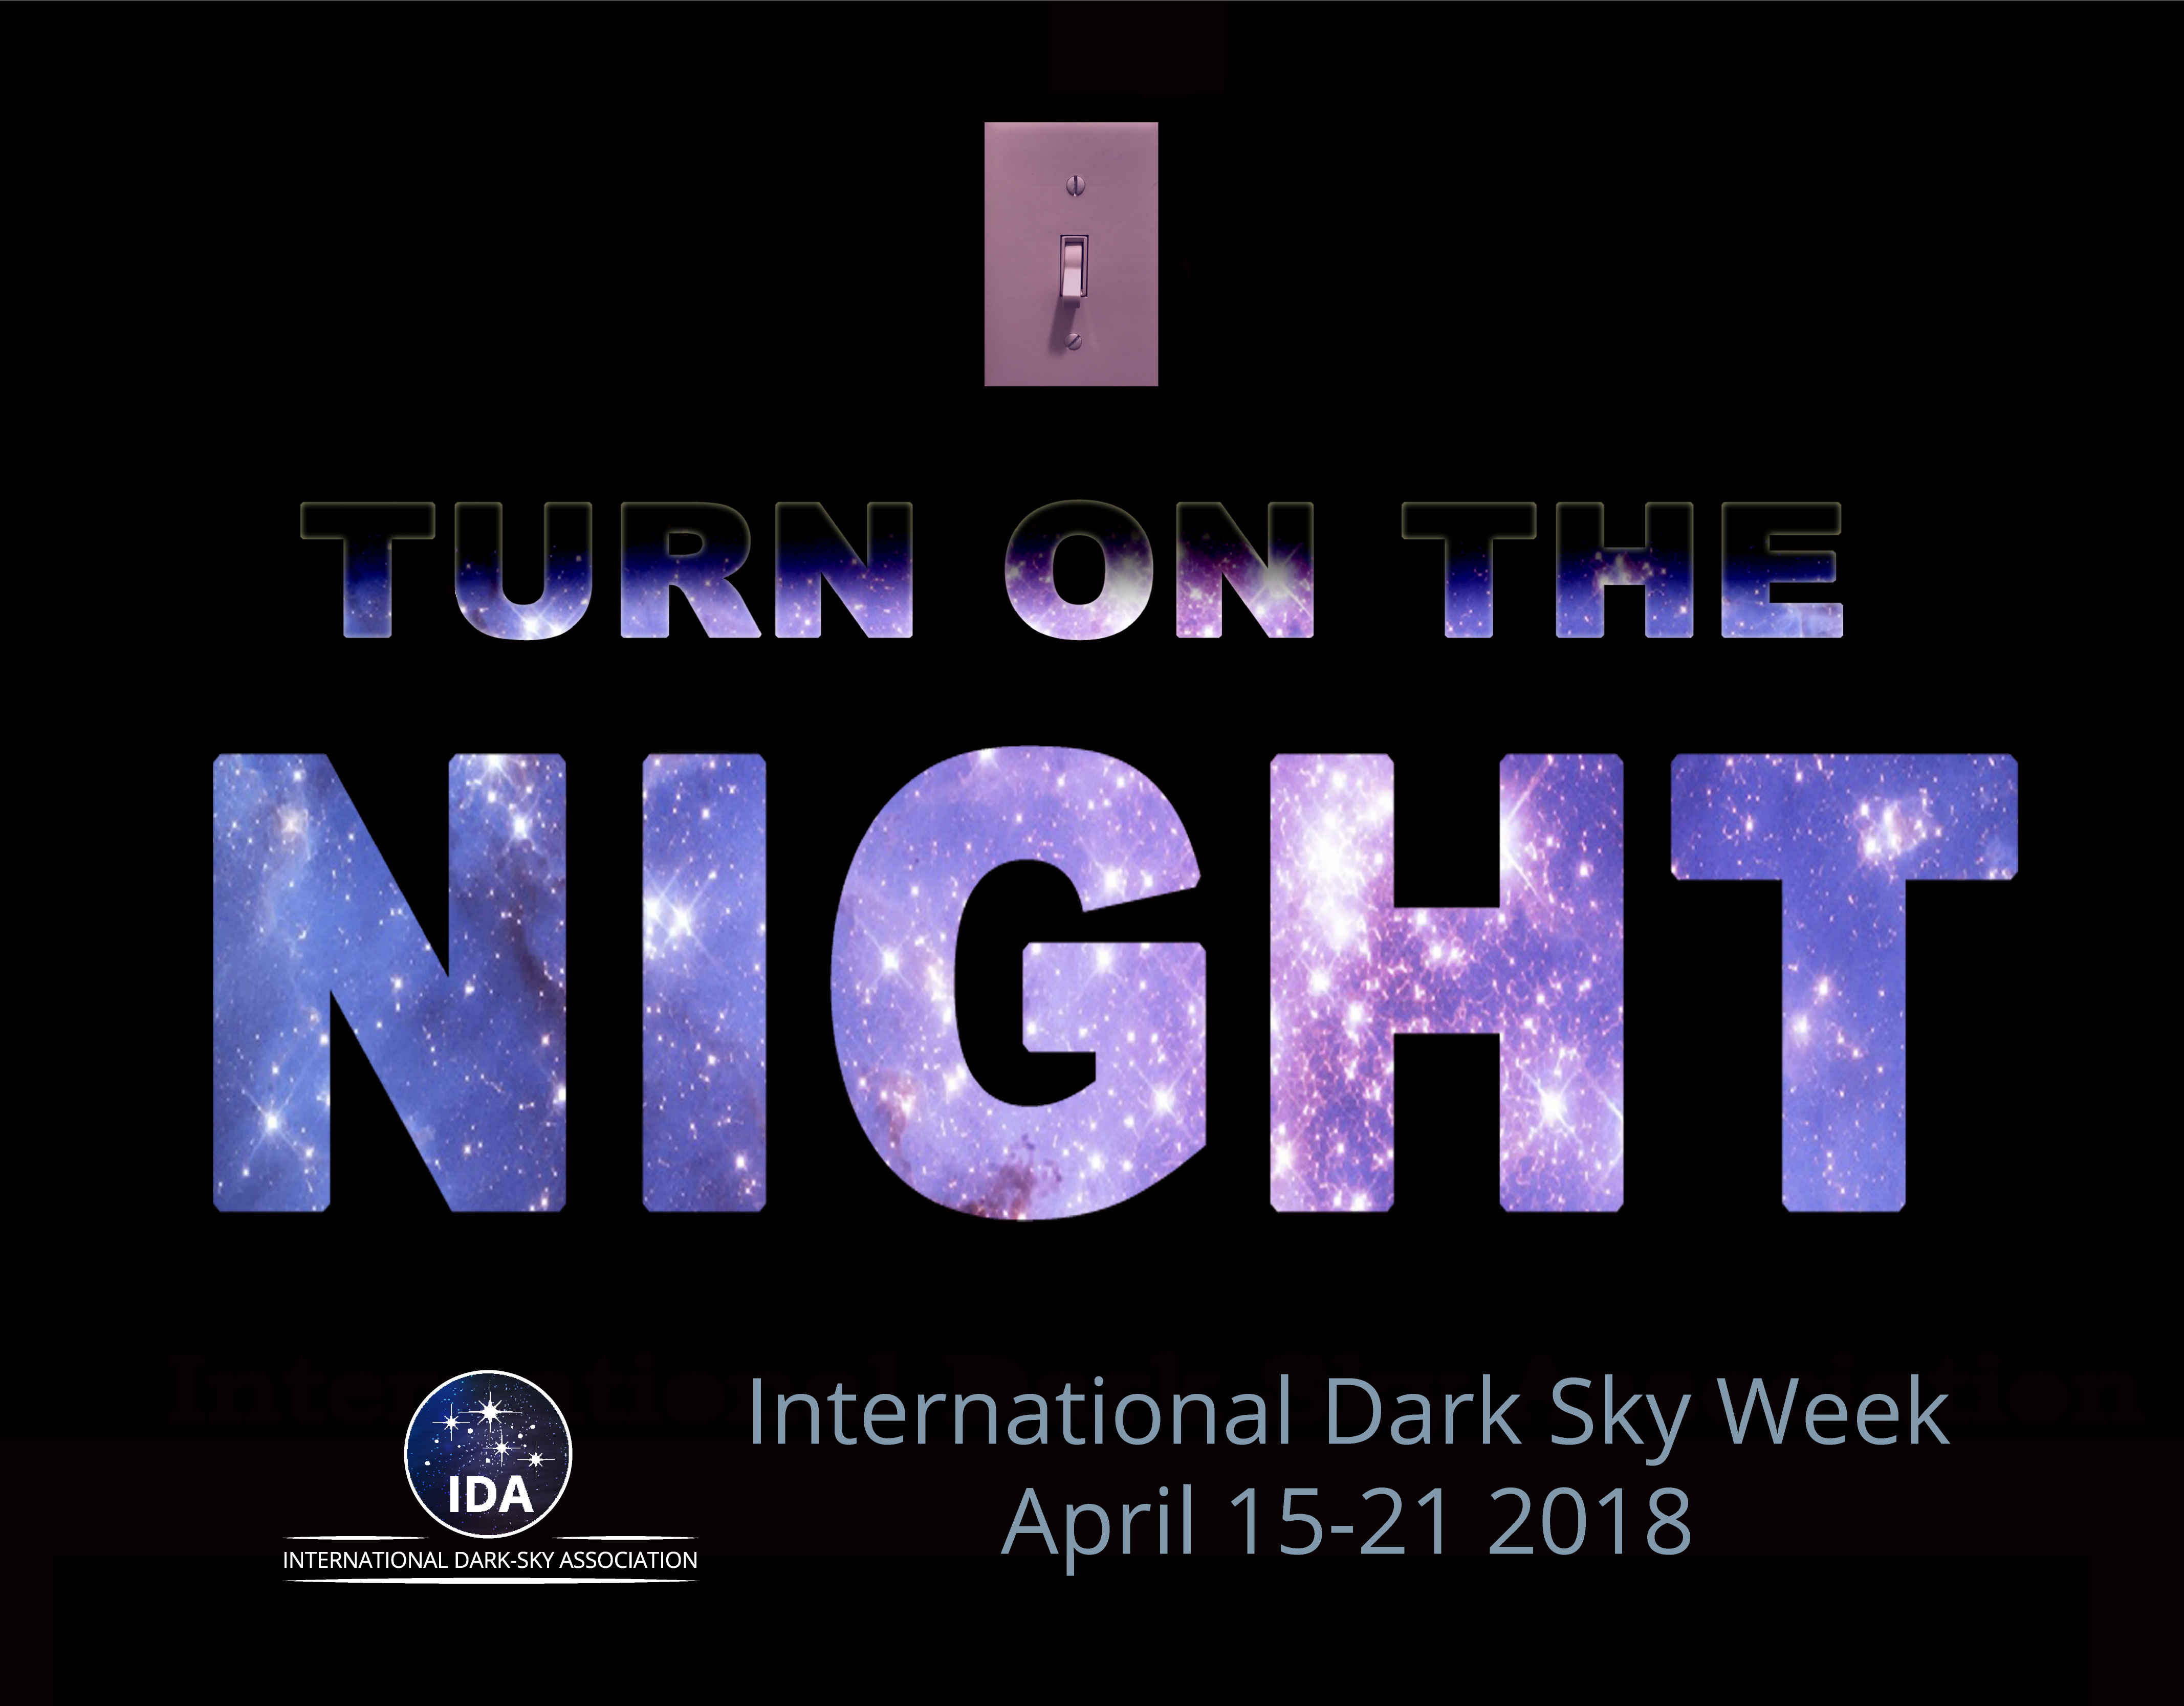 International Dark Sky Week 2018 Image